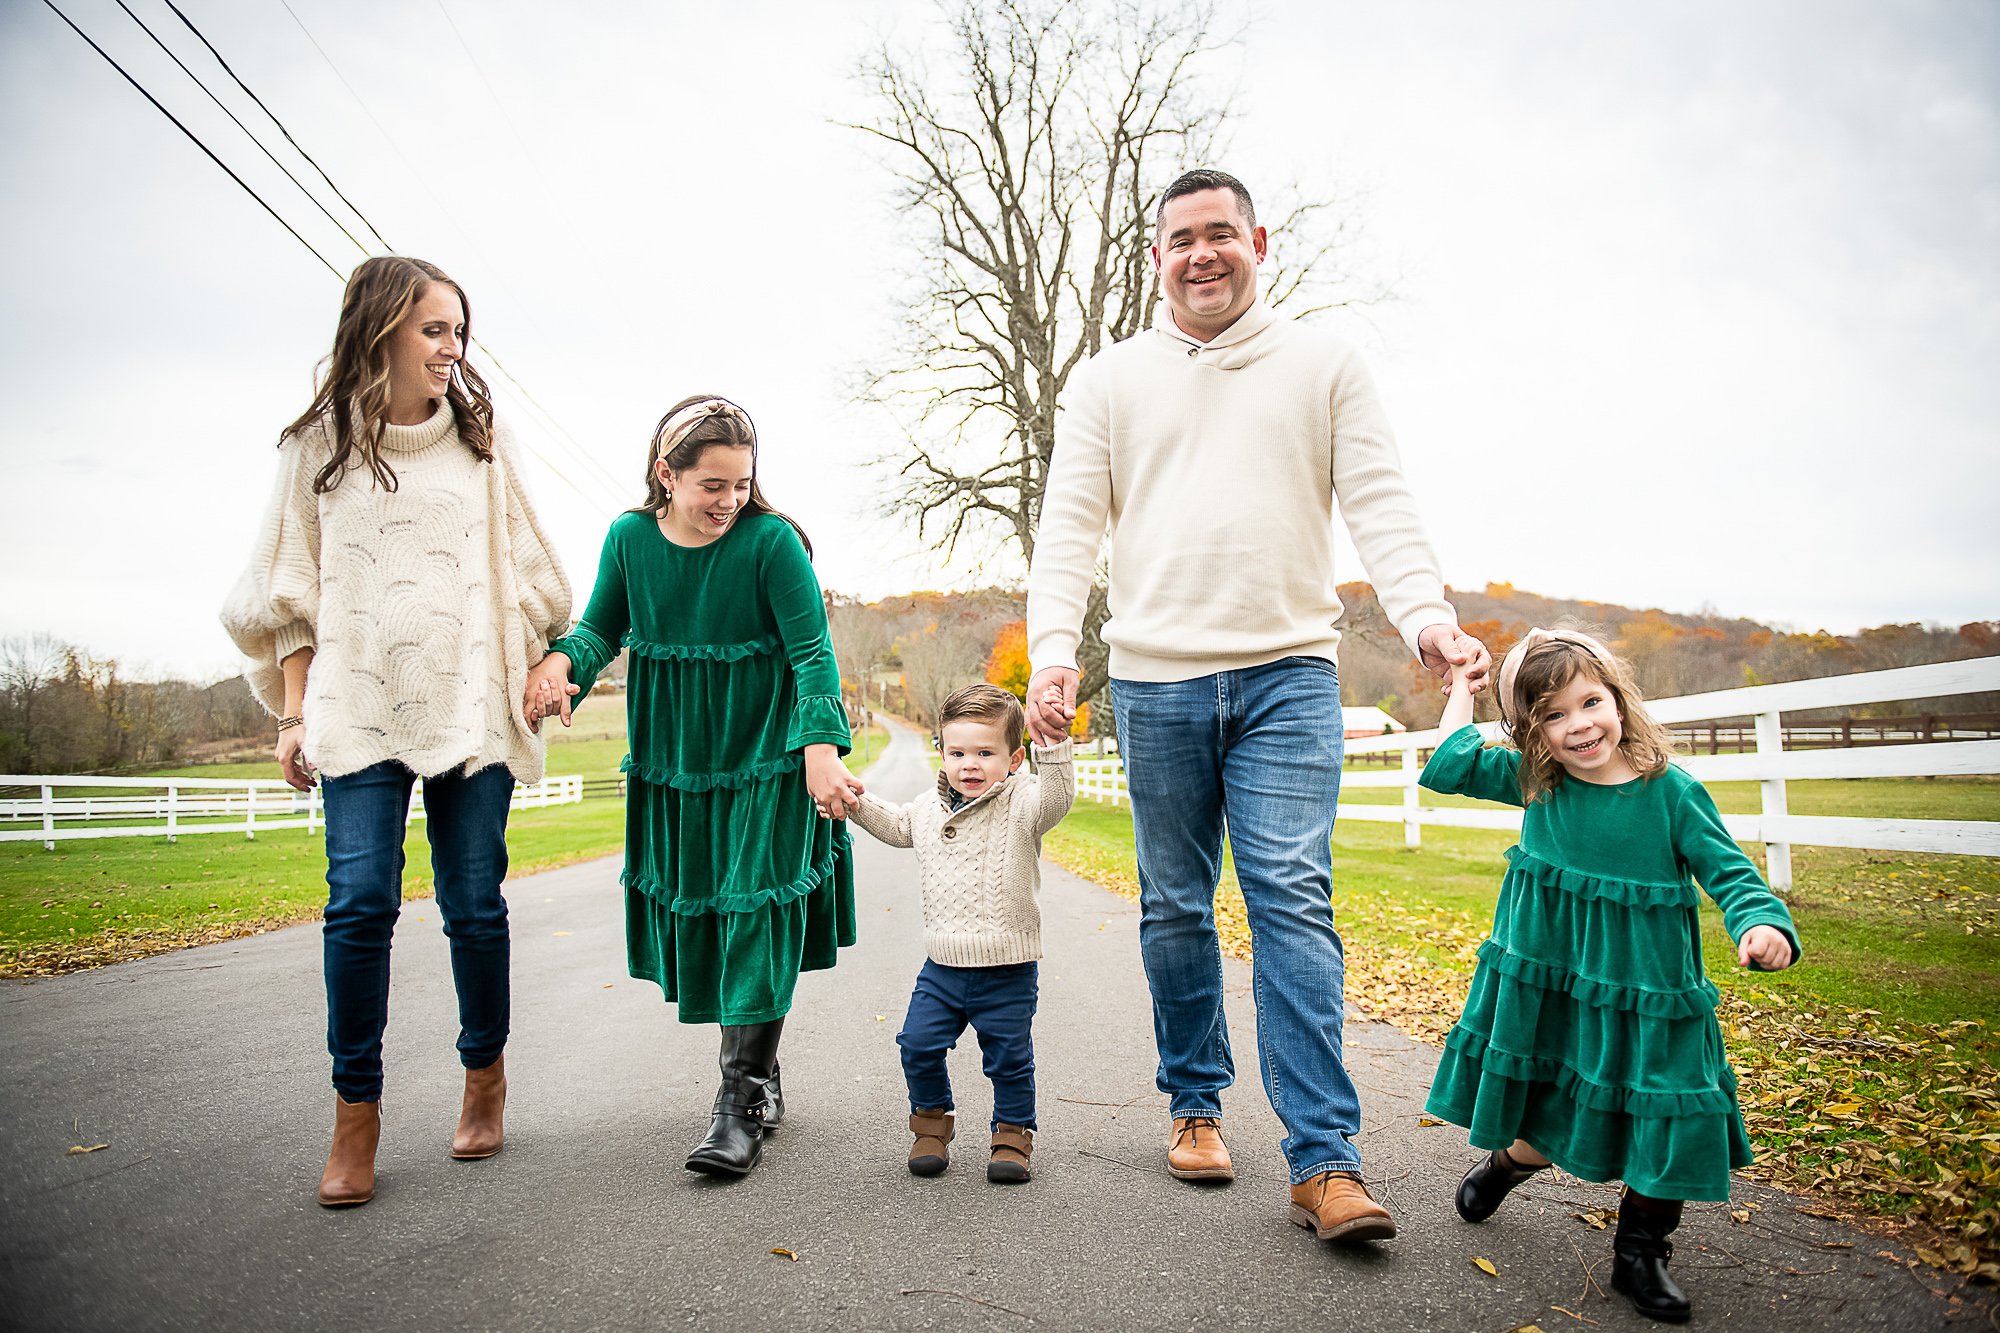 Family Photos in Connecticut; Photography by Christopher Duggan